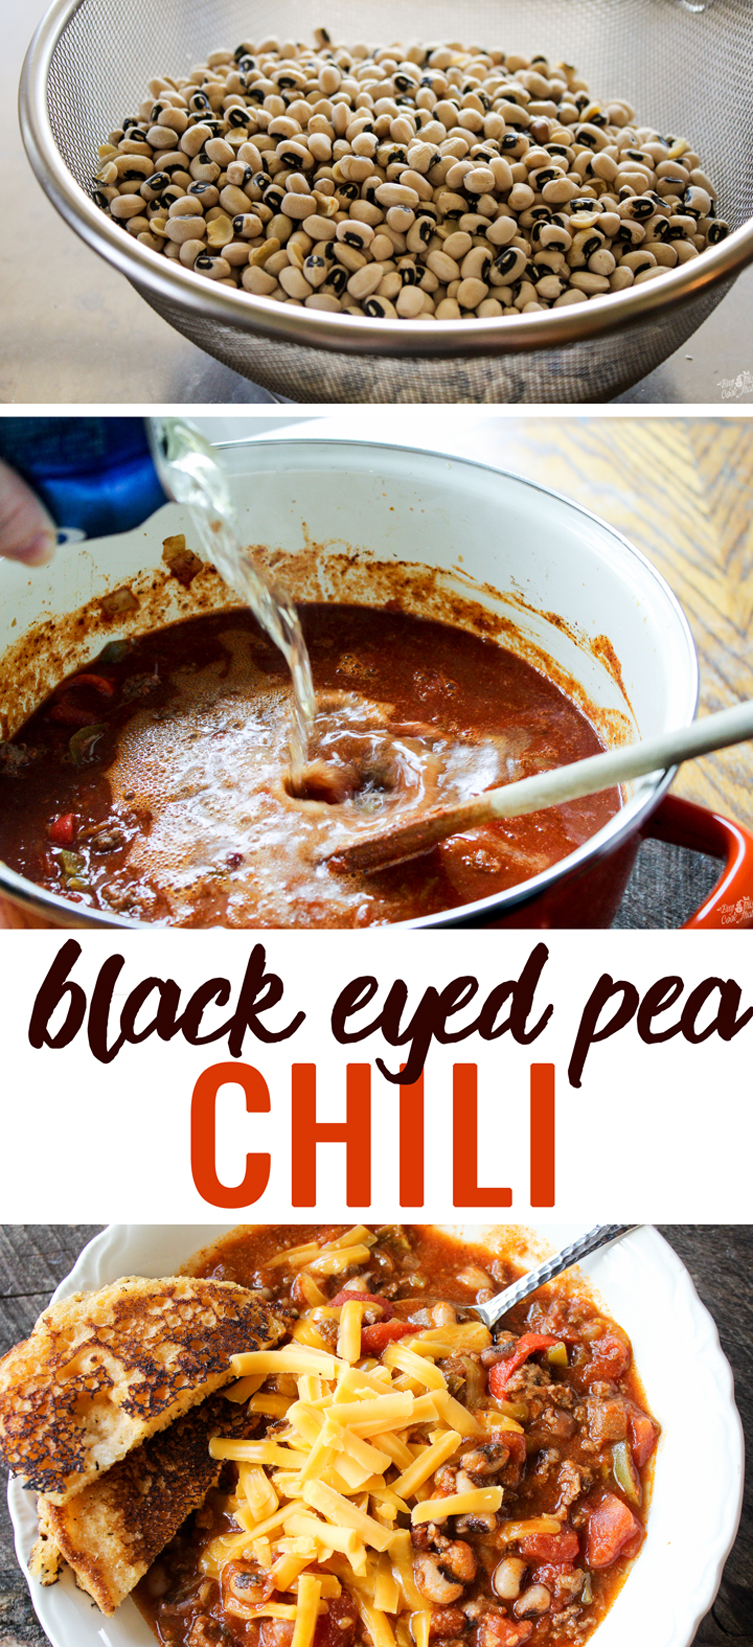 A spicy classic with a Southern twist. Our Black Eyed Pea Chili recipe is amazing. Earthy flavor with a kick. (Serve with cornbread.)